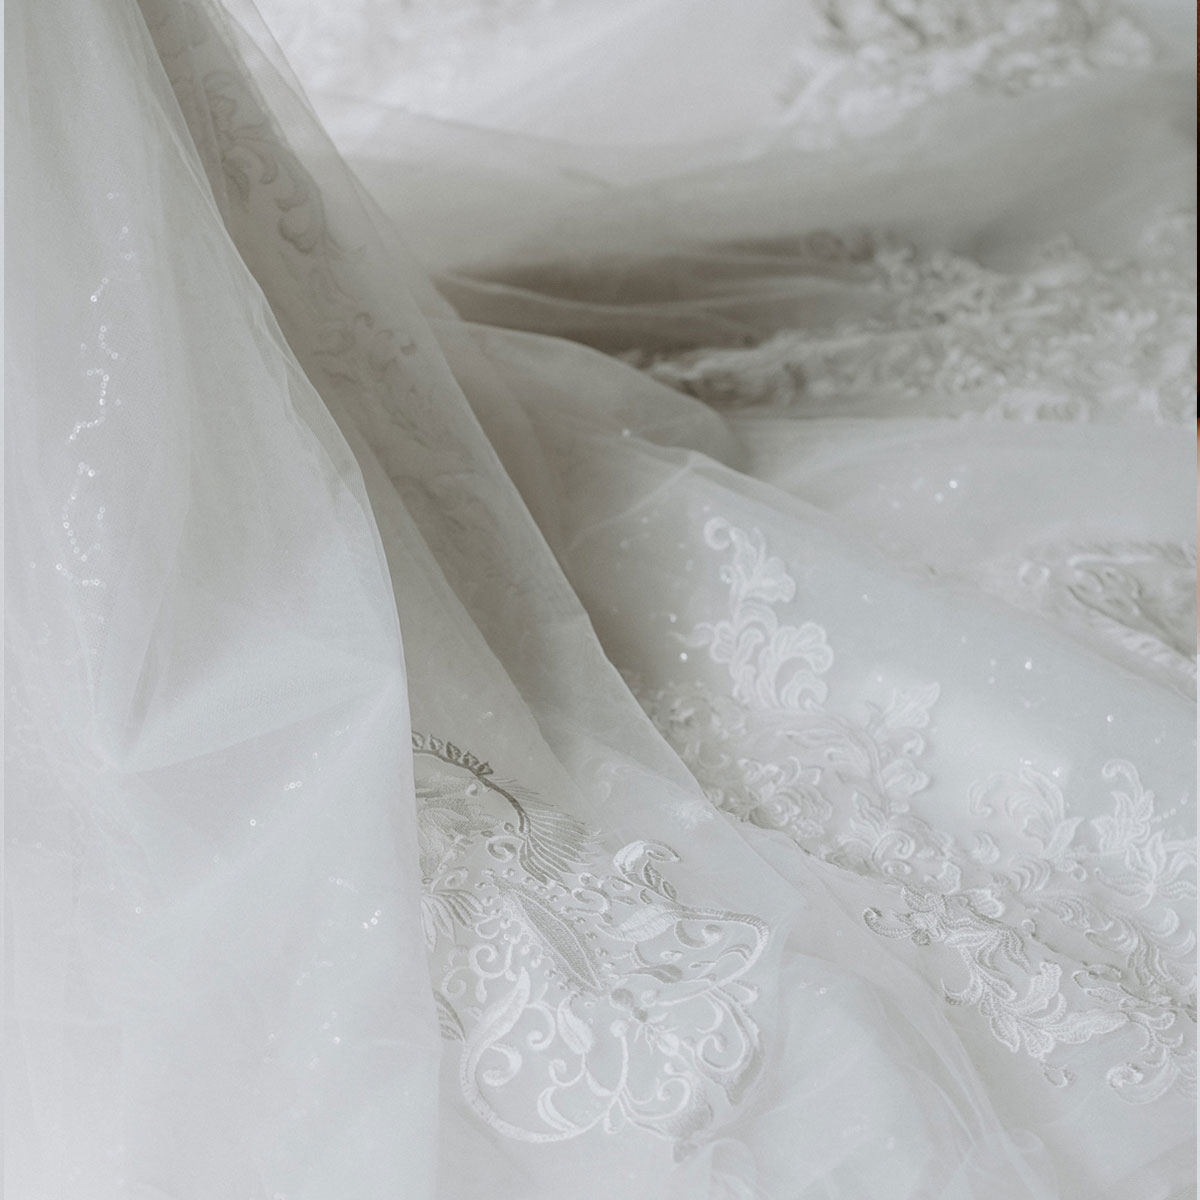 whats in a wedding dress1